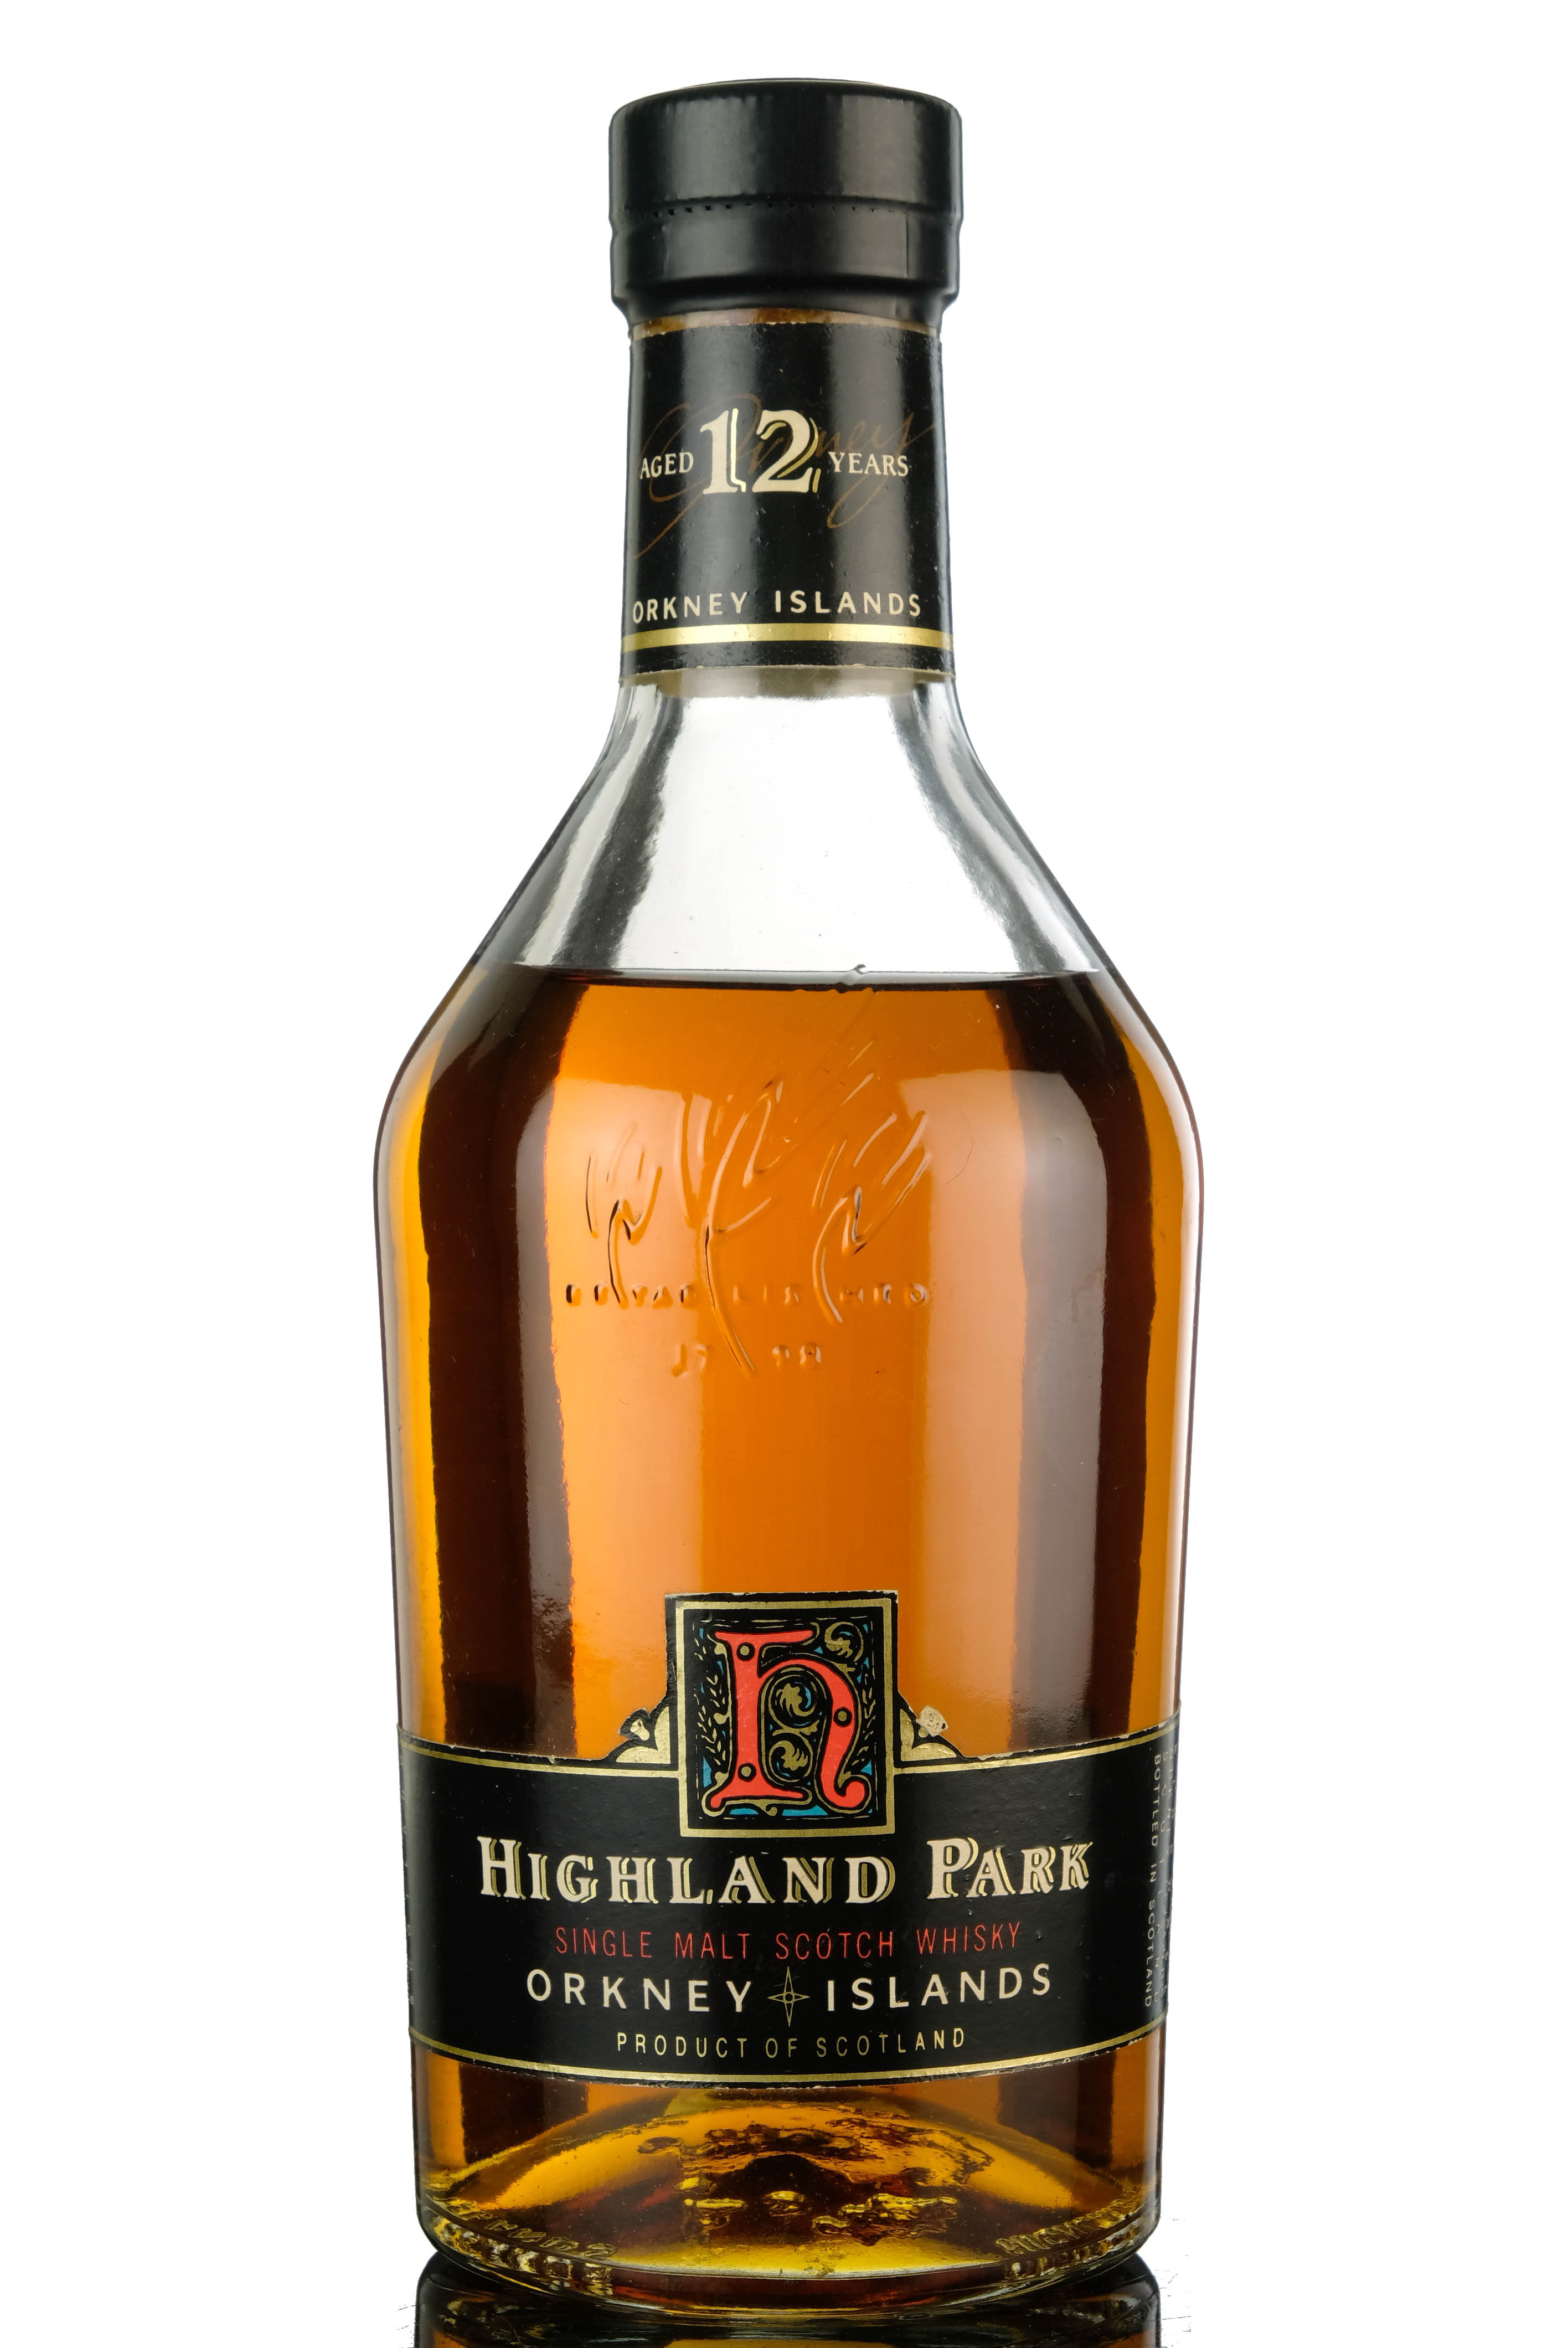 highland park 12 year old - 1980s